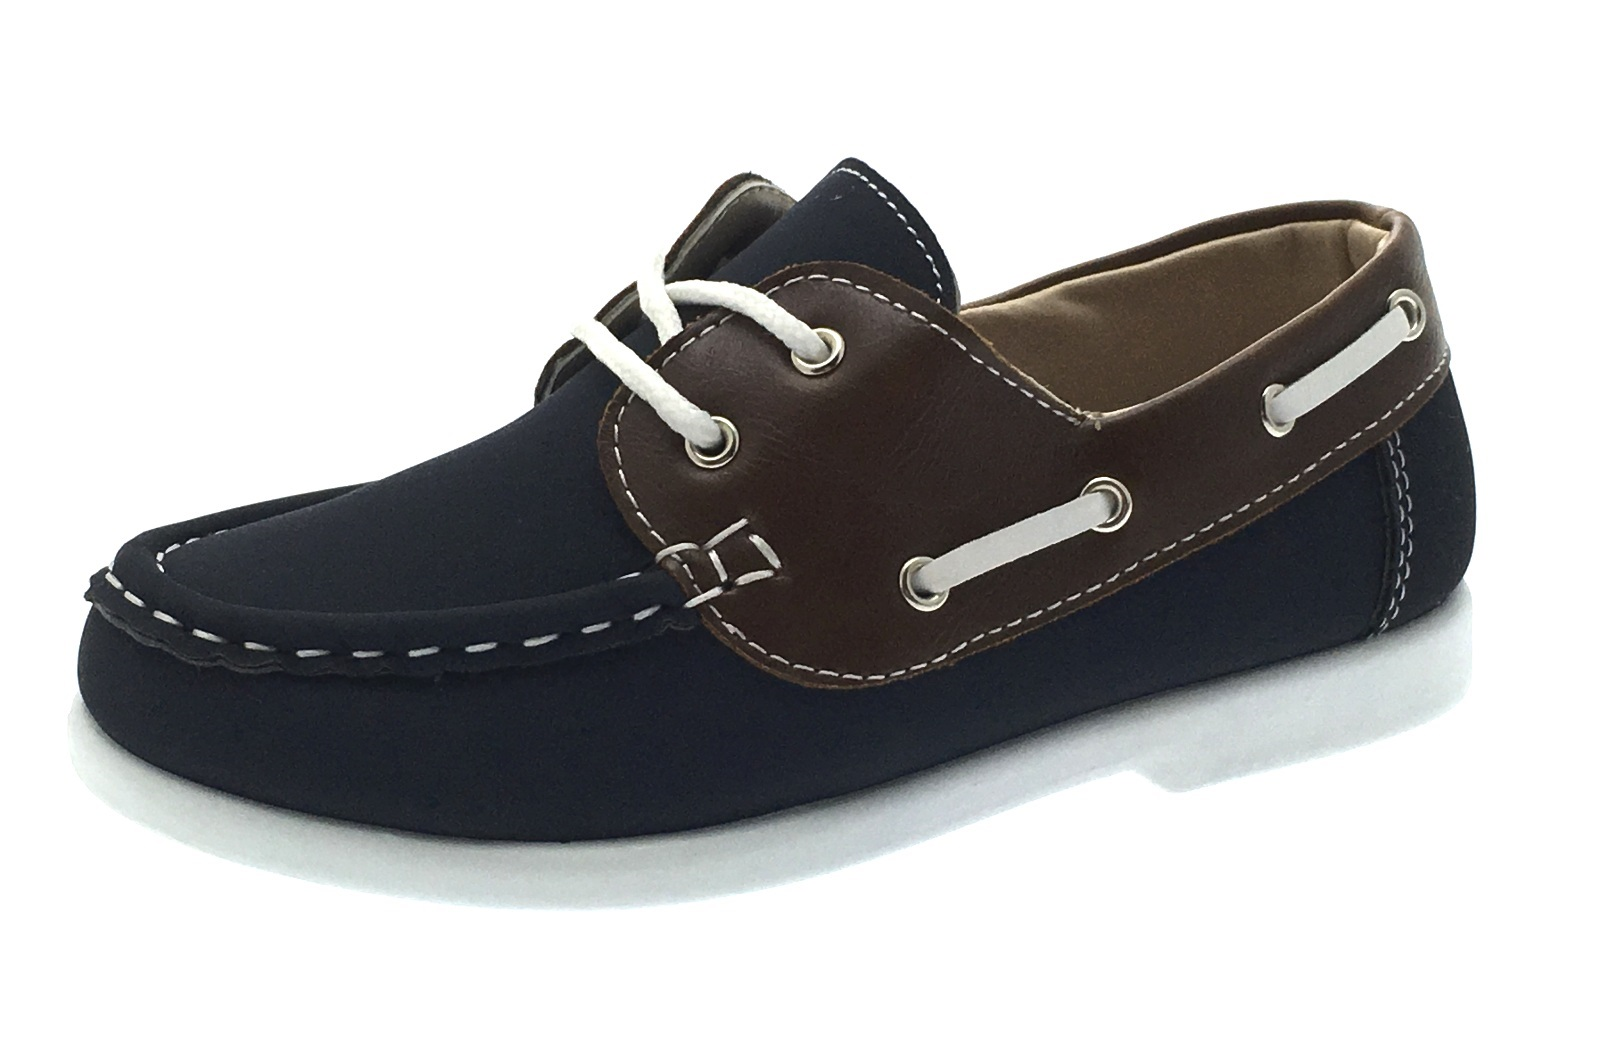 Boys Boat Deck Shoes Slip On Lace Up Loafers Casual Moccasins Party Kids  Size   eBay